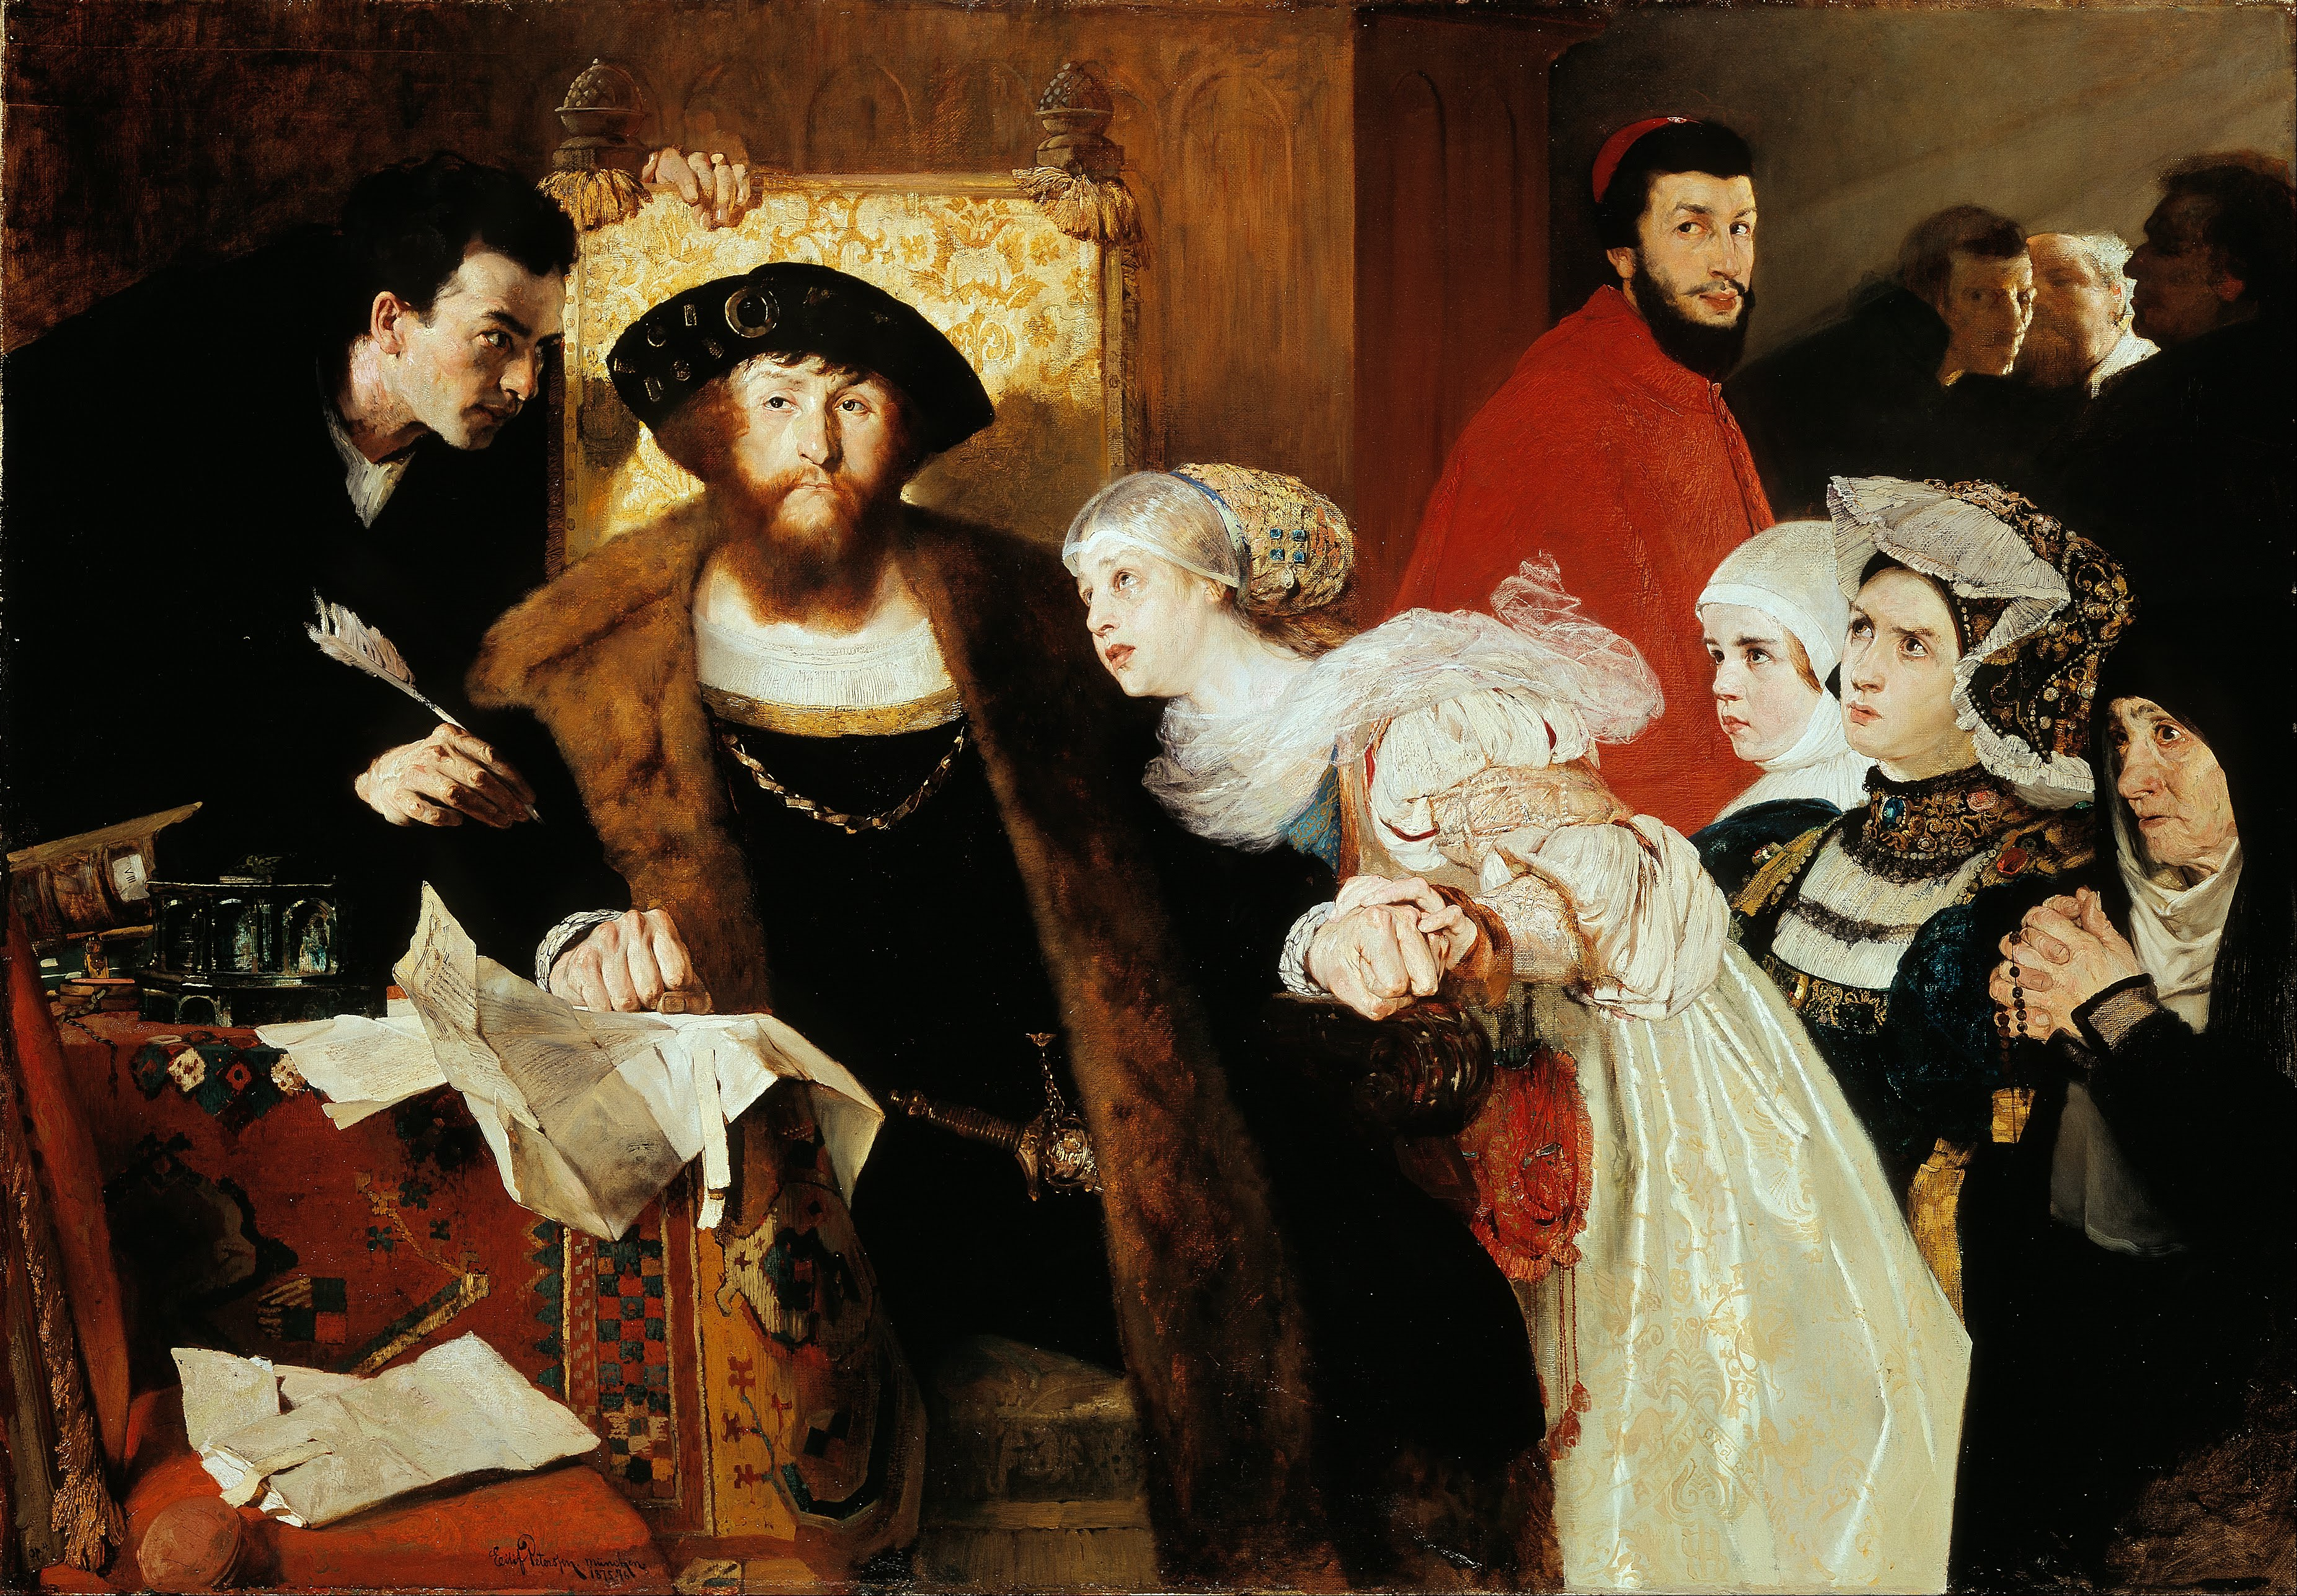 Eilif_Peterssen_-_Christian_II_signing_the_Death_Warrant_of_Torben_Oxe_-_Google_Art_Project